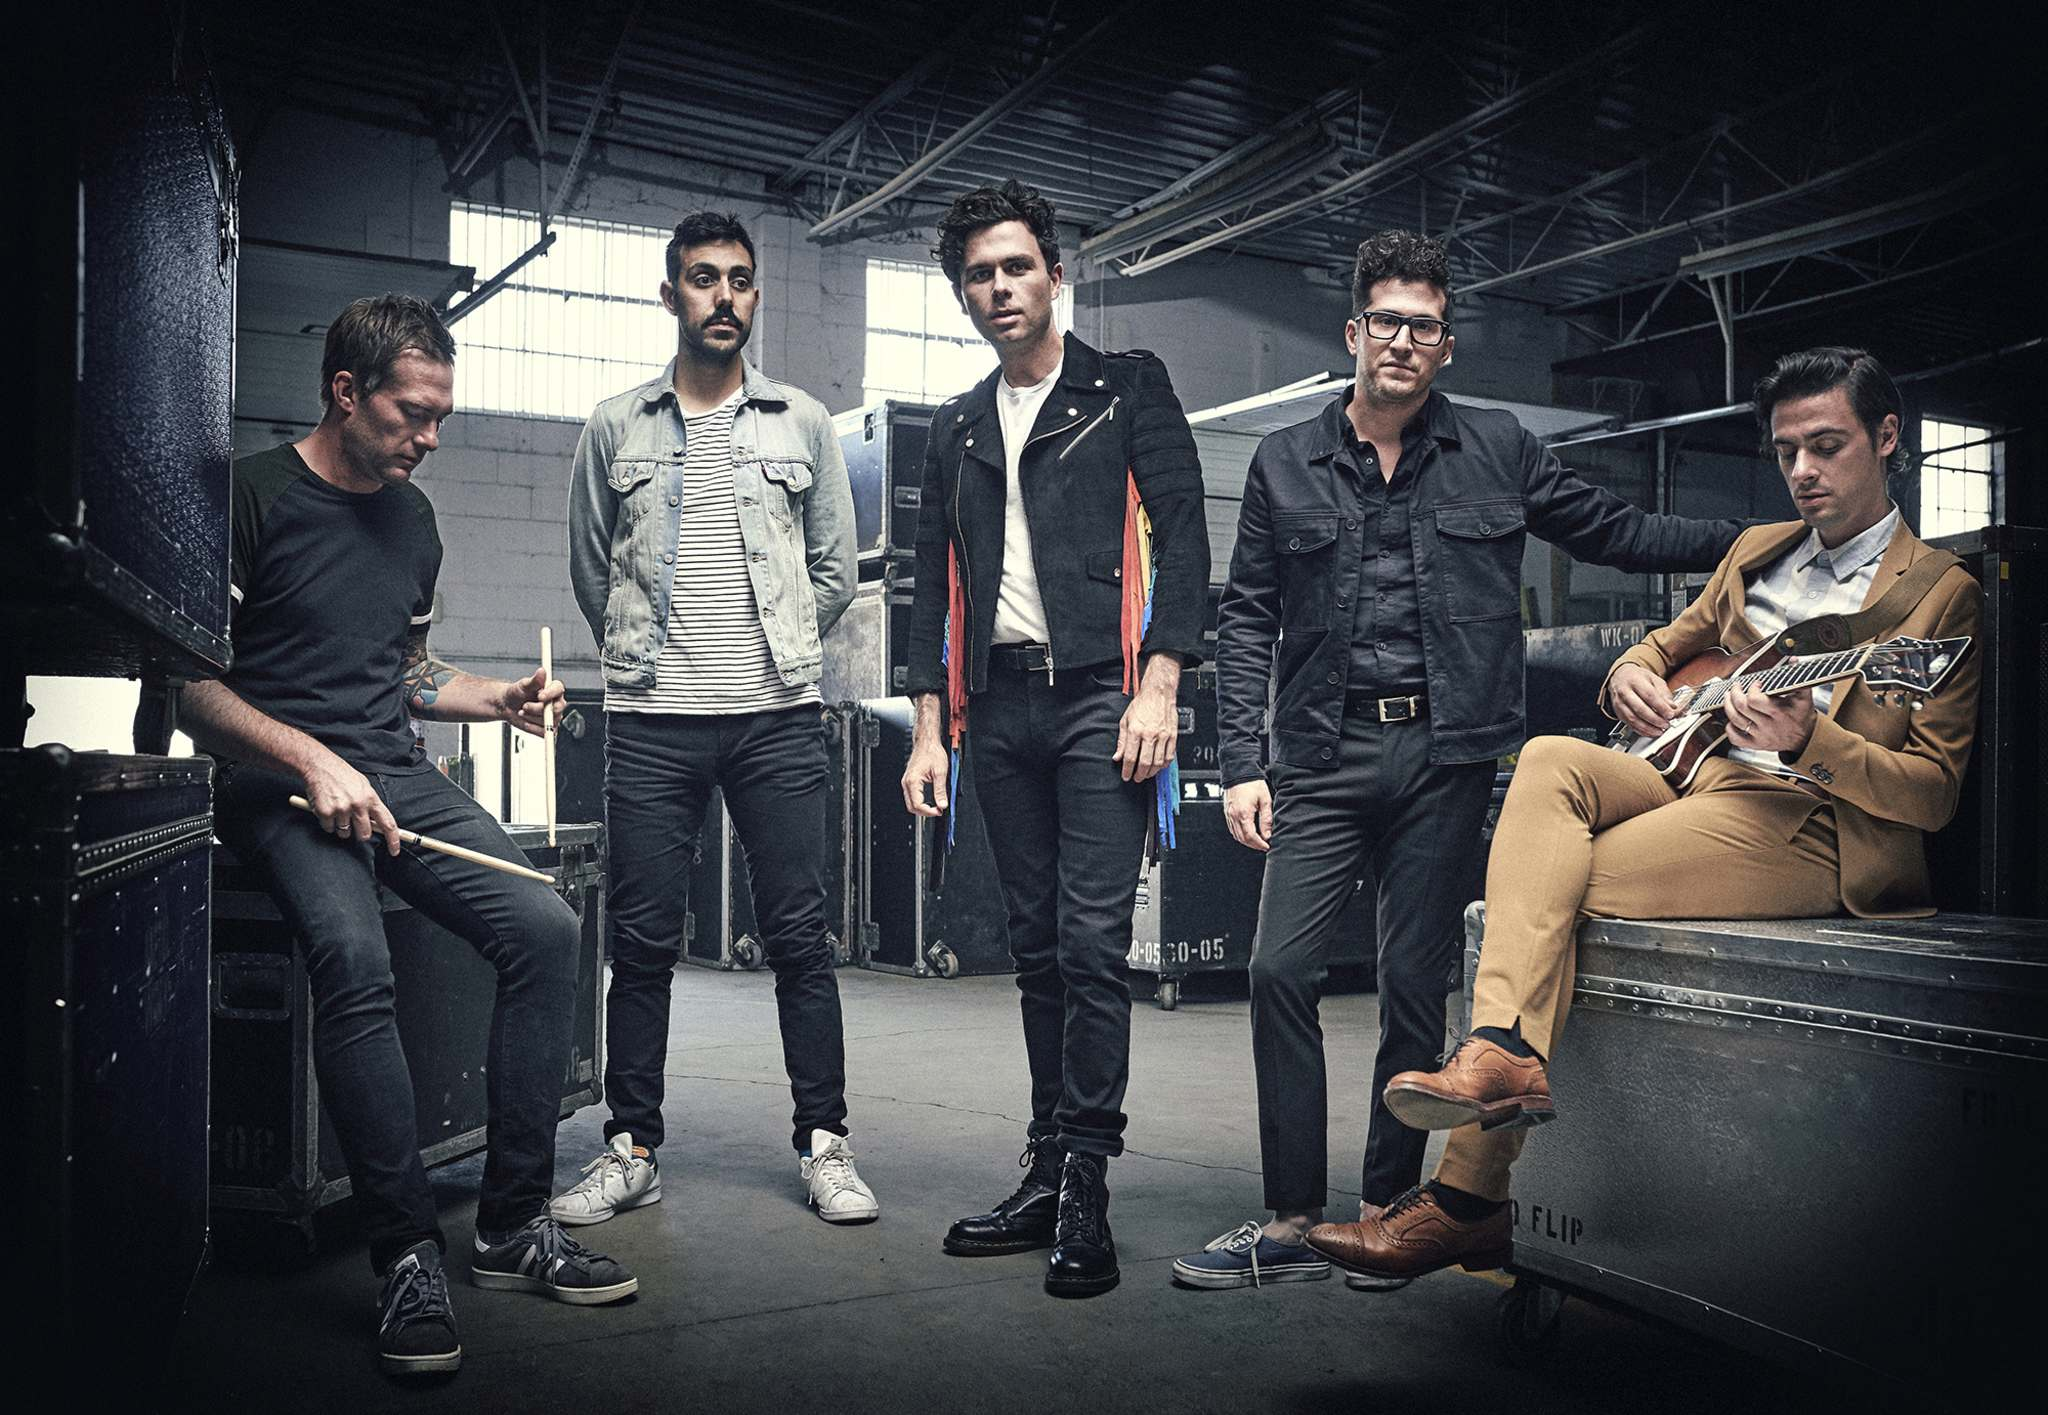 Changes in the newspaper industry impact workhorse Canadian touring bands such as, say, the Arkells, who rely on coverage from the local alt weekly or daily newspaper in the cities on their tour.  (Matt Barnes photo)</p>